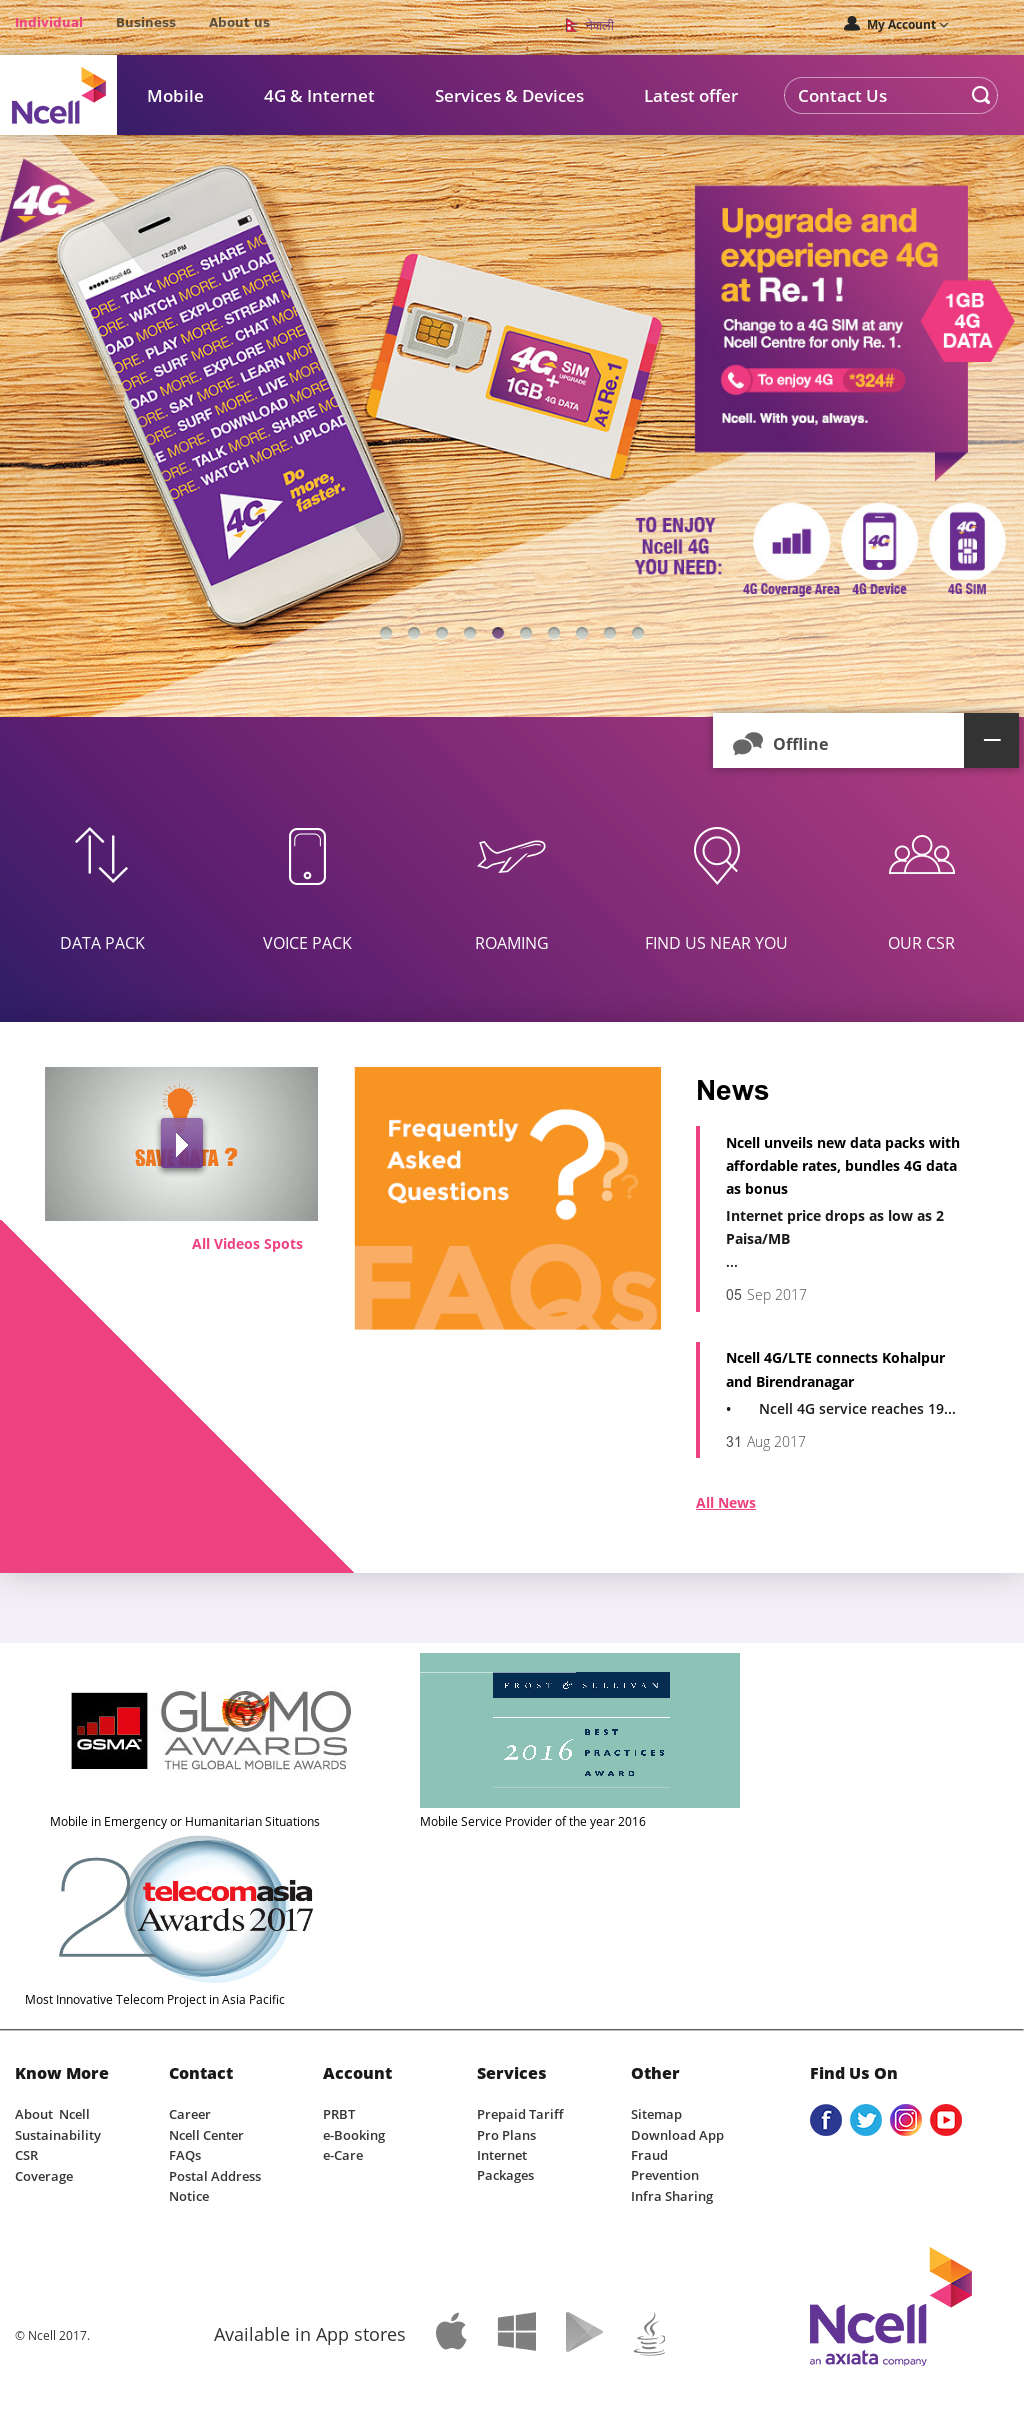 Ncell Competitors, Revenue and Employees - Owler Company Profile